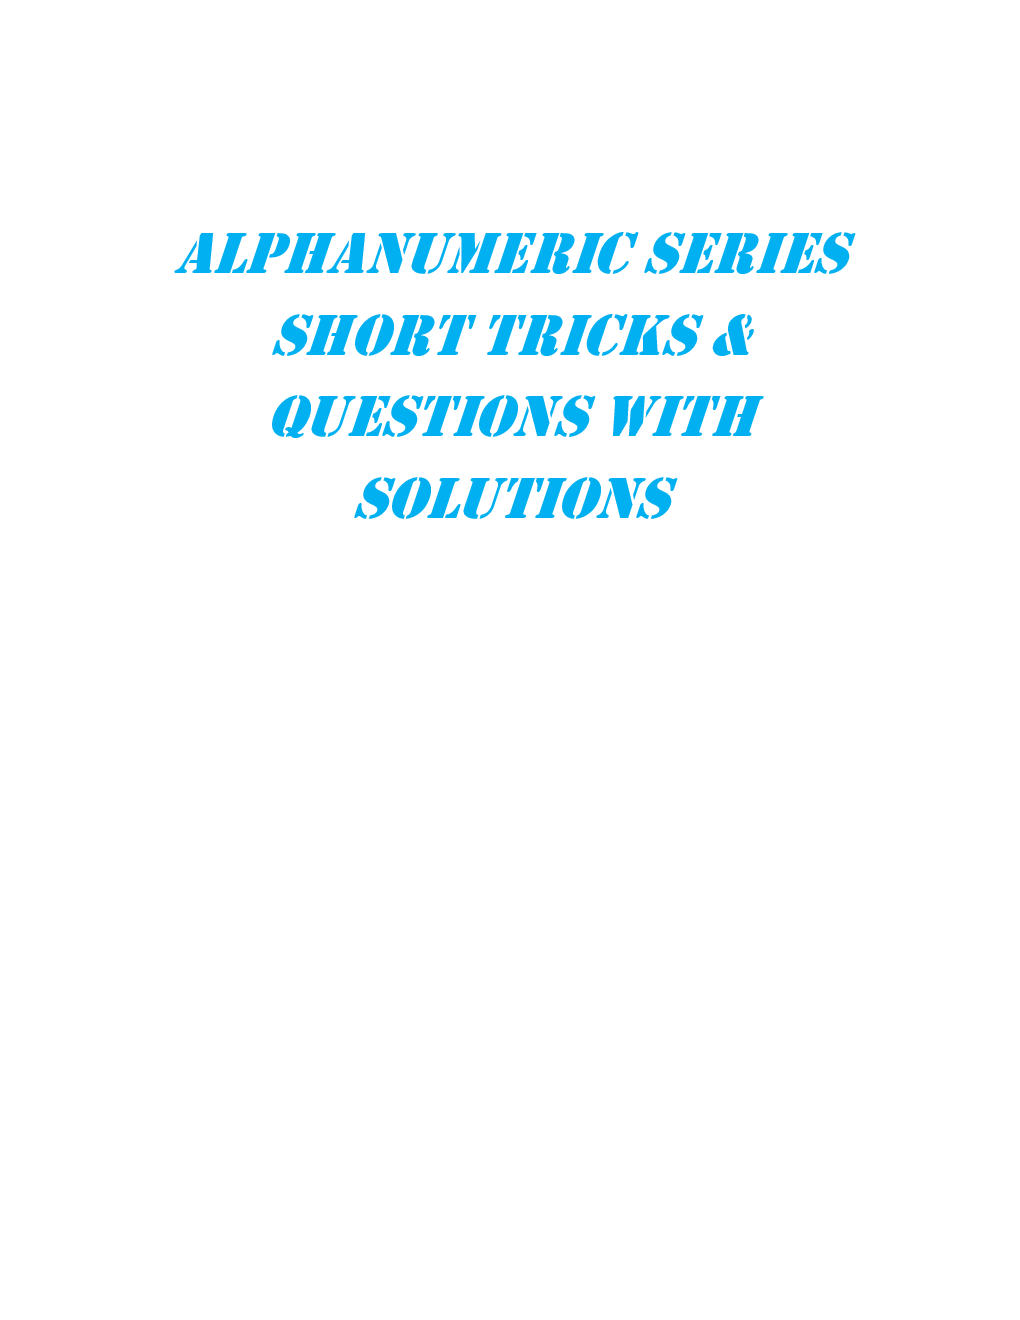 MCQs Reasoning (Alphanumeric Series) With Solutions - Page 2